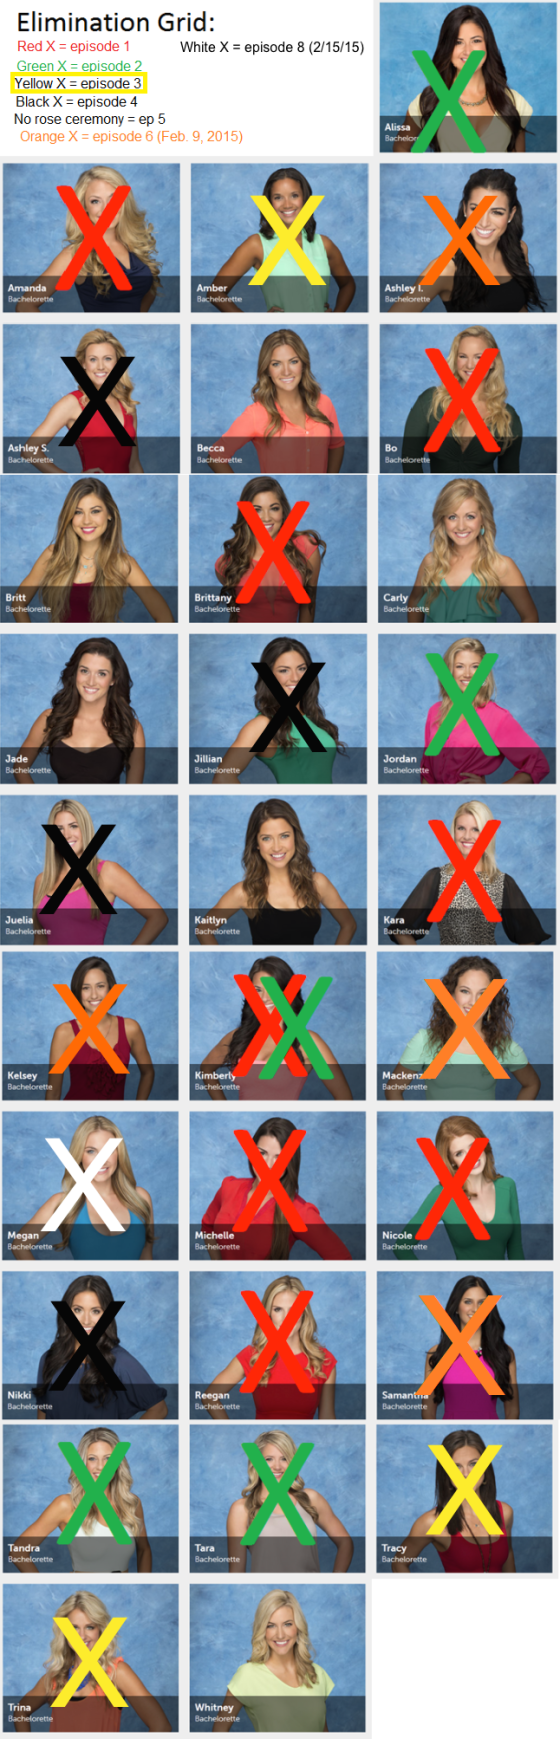 bachelorettes-remaining-ep8c